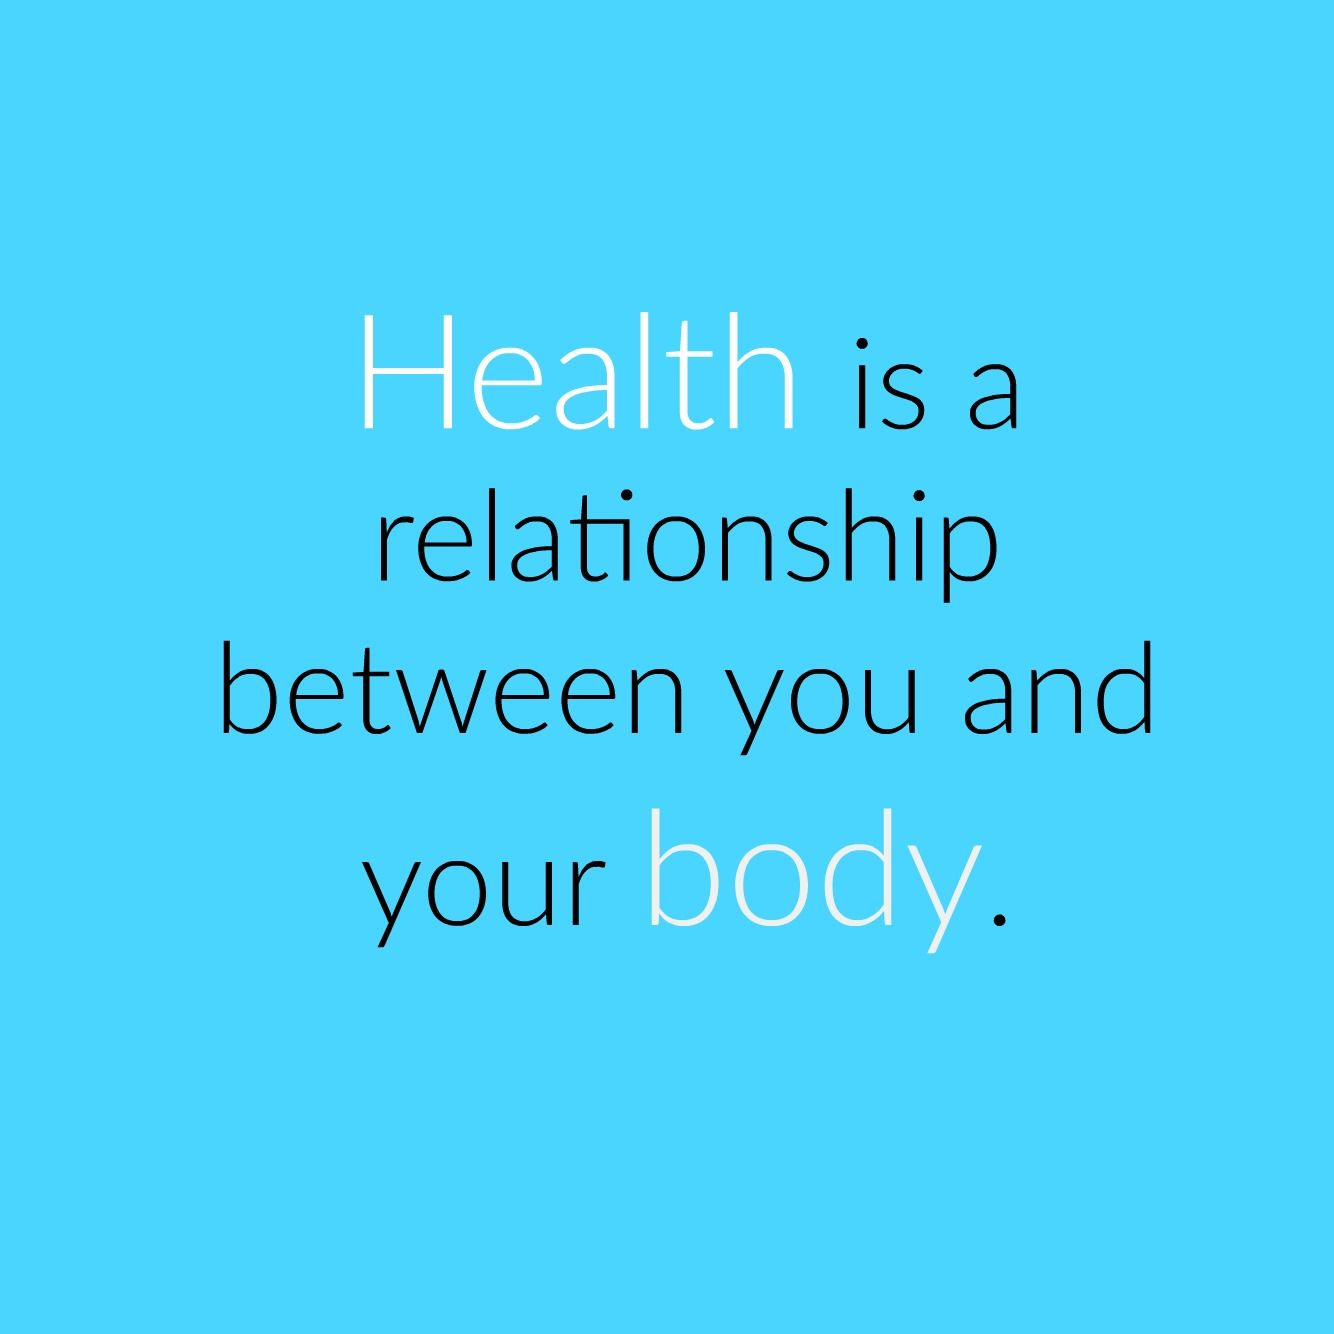 Quotes About Giving Back A Healthy Relationship Between You And Your Body Means There Is An